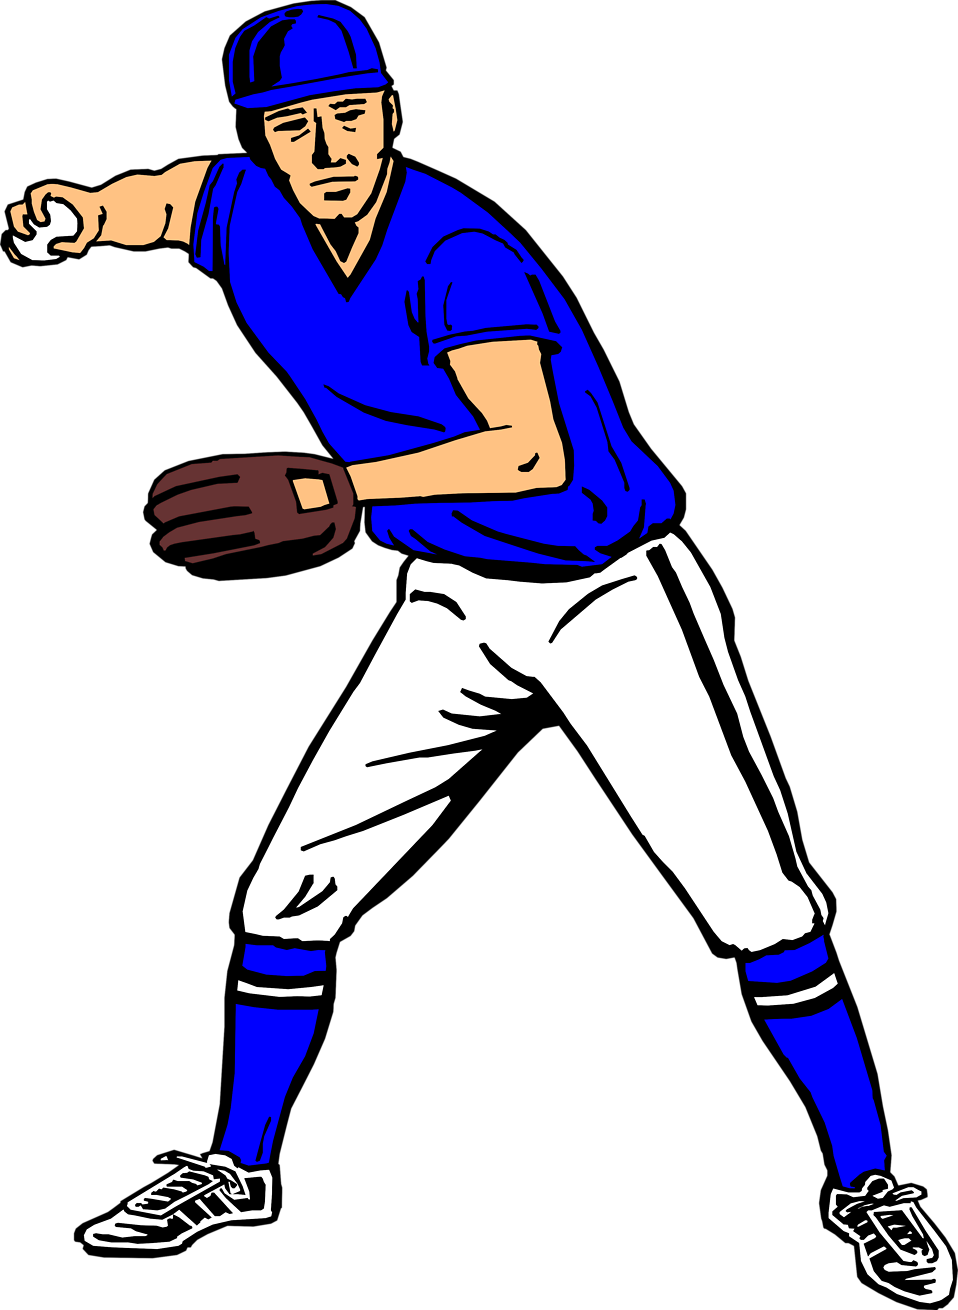 Baseball player throwing clipart clip Baseball | Free Stock Photo | Illustration of a baseball player ... clip